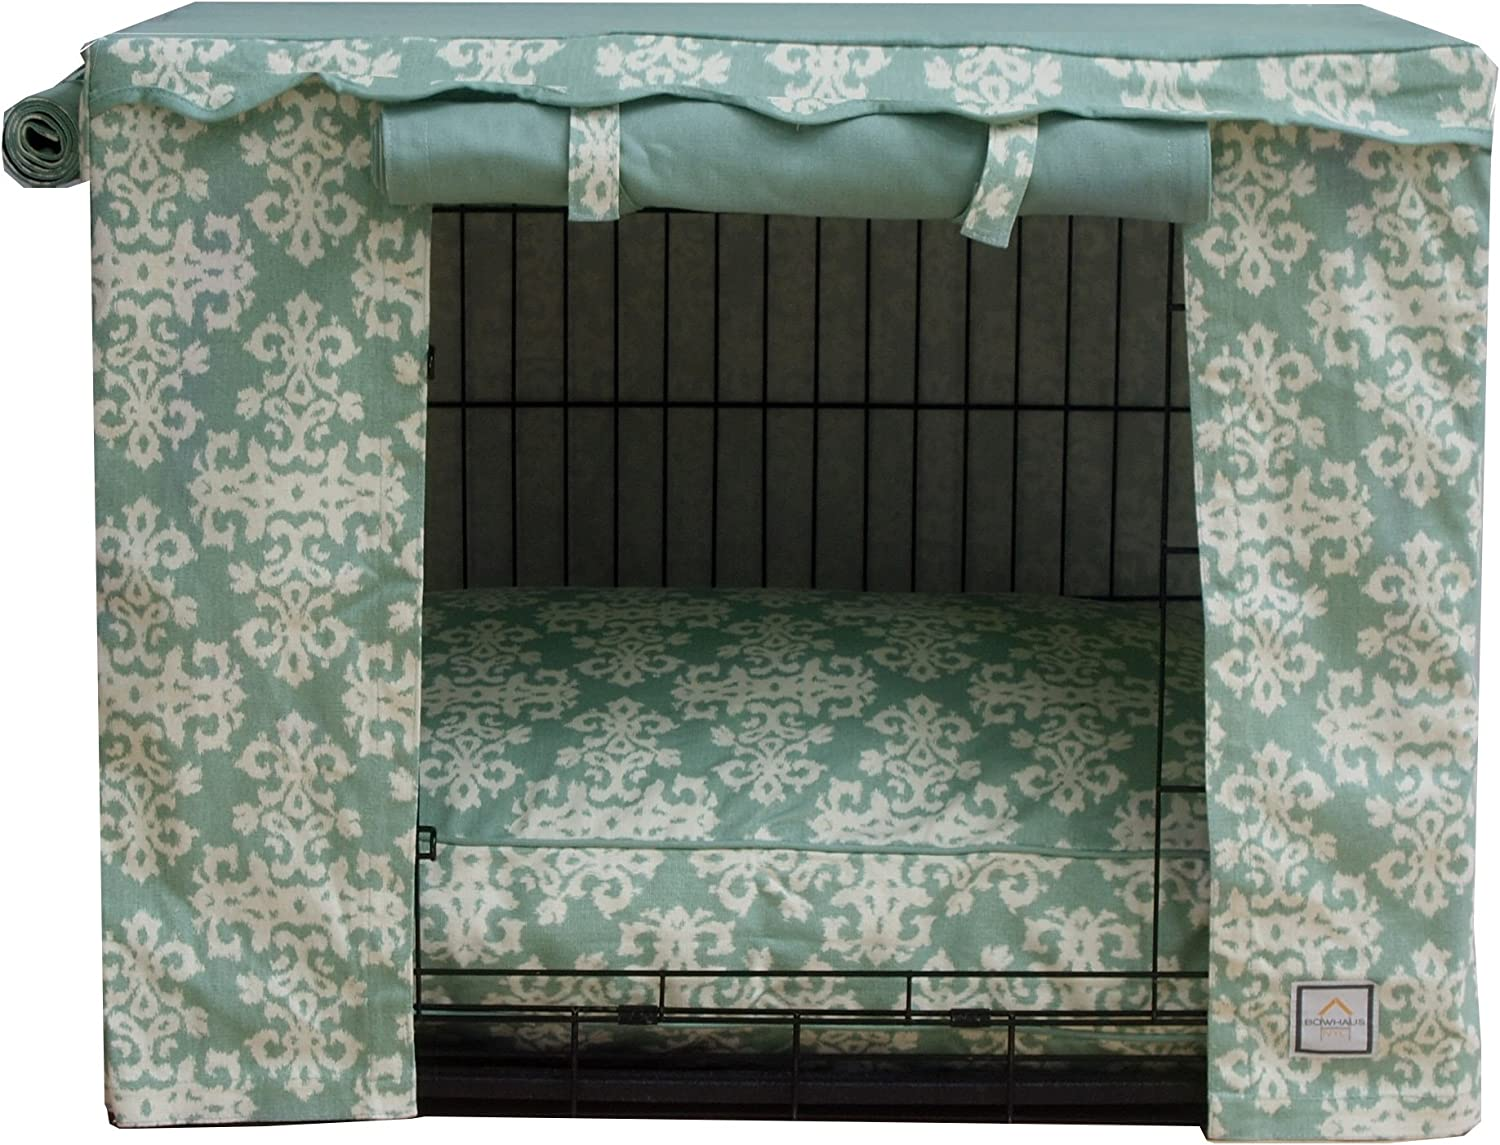 BowhausNYC Elegancia Crate Cream Sage Cover Outlet ☆ Free Shipping Ranking TOP8